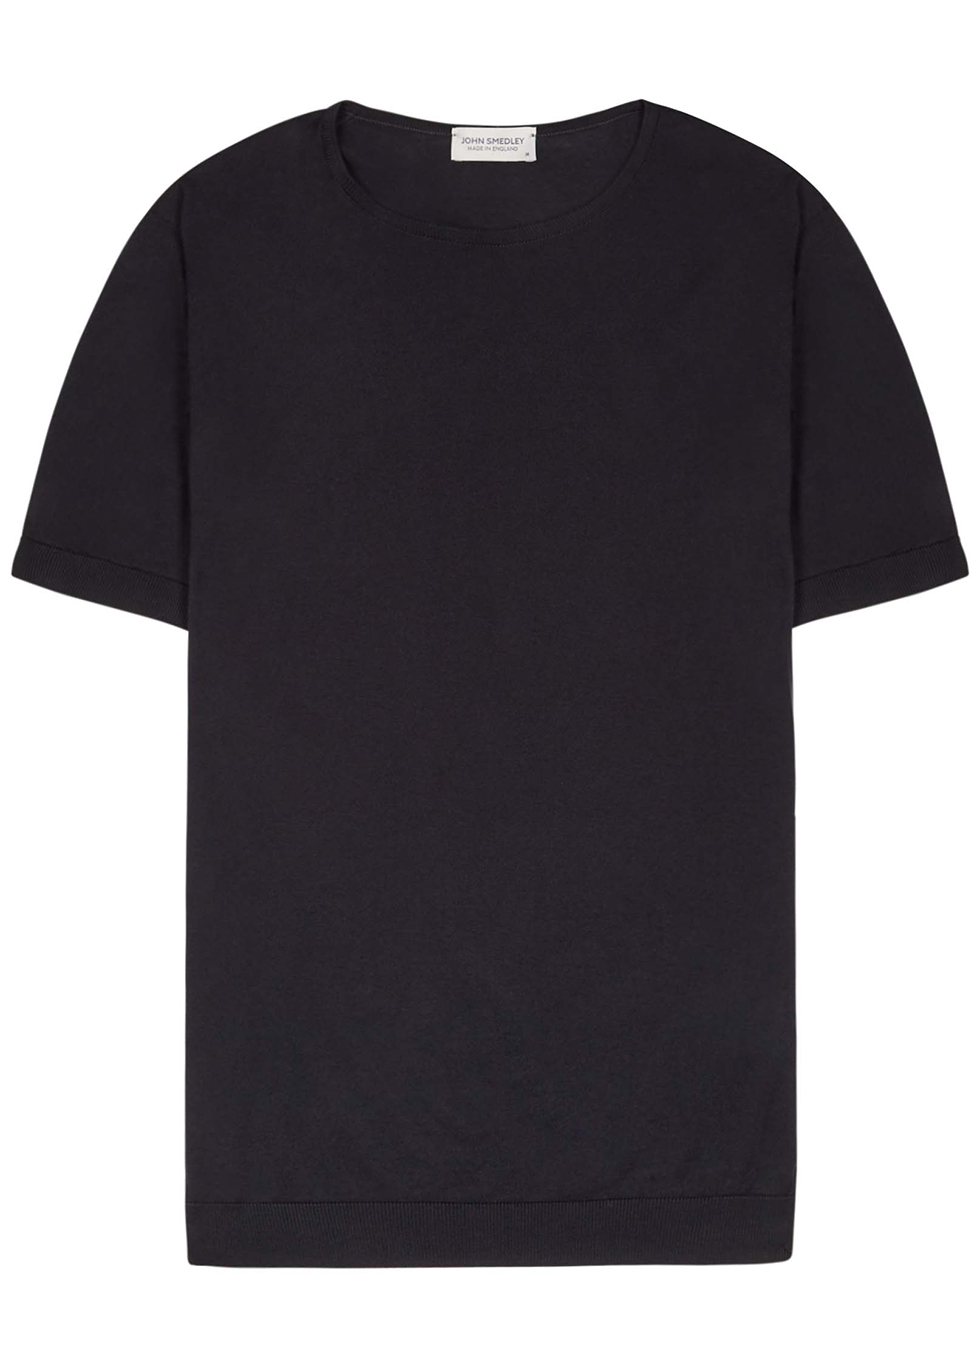 Belden black cotton T-shirt